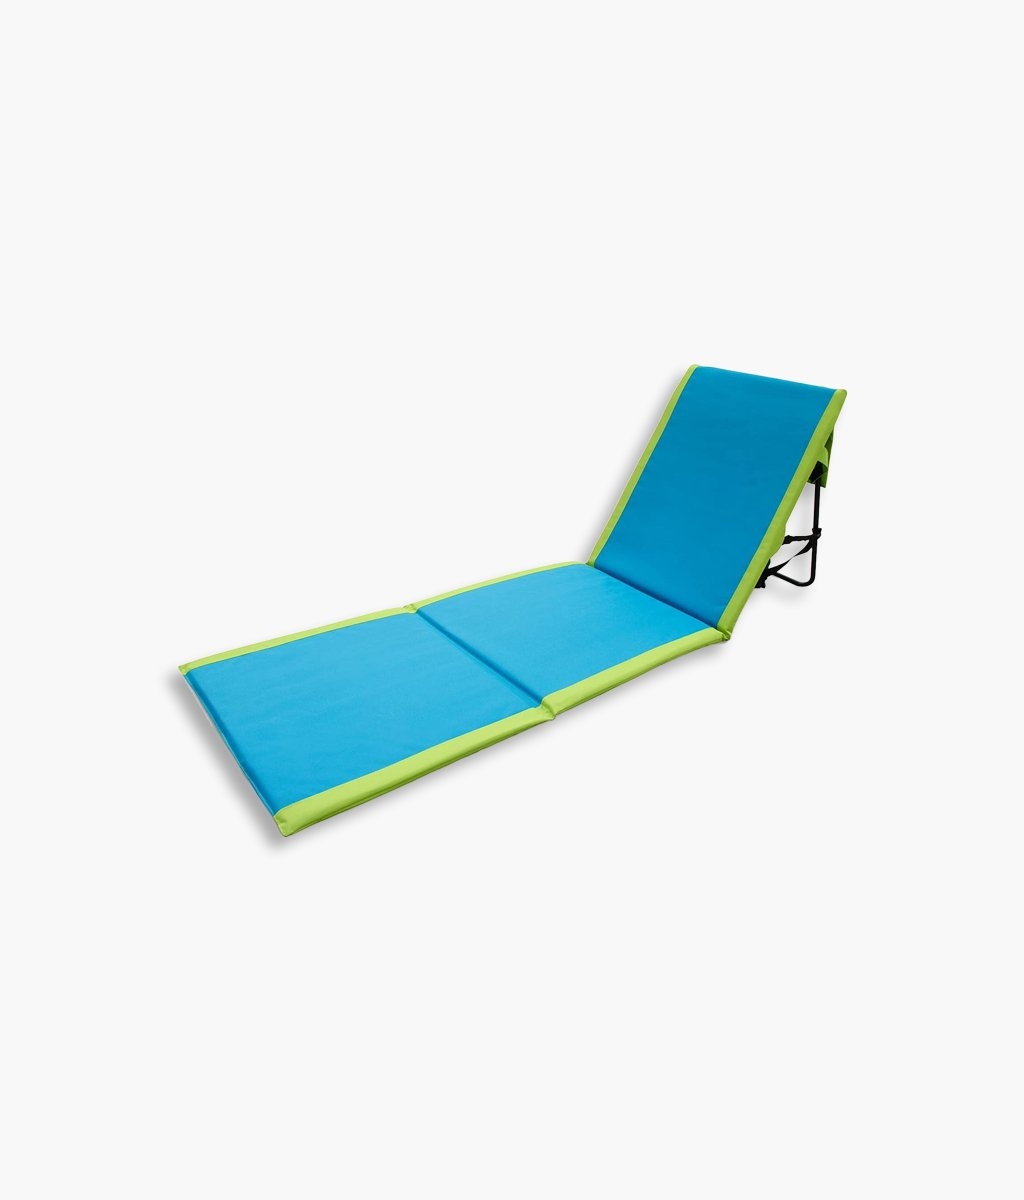 China Wholesale Camping Suppliers –  Portable Beach Mat & Chair – Kinghow